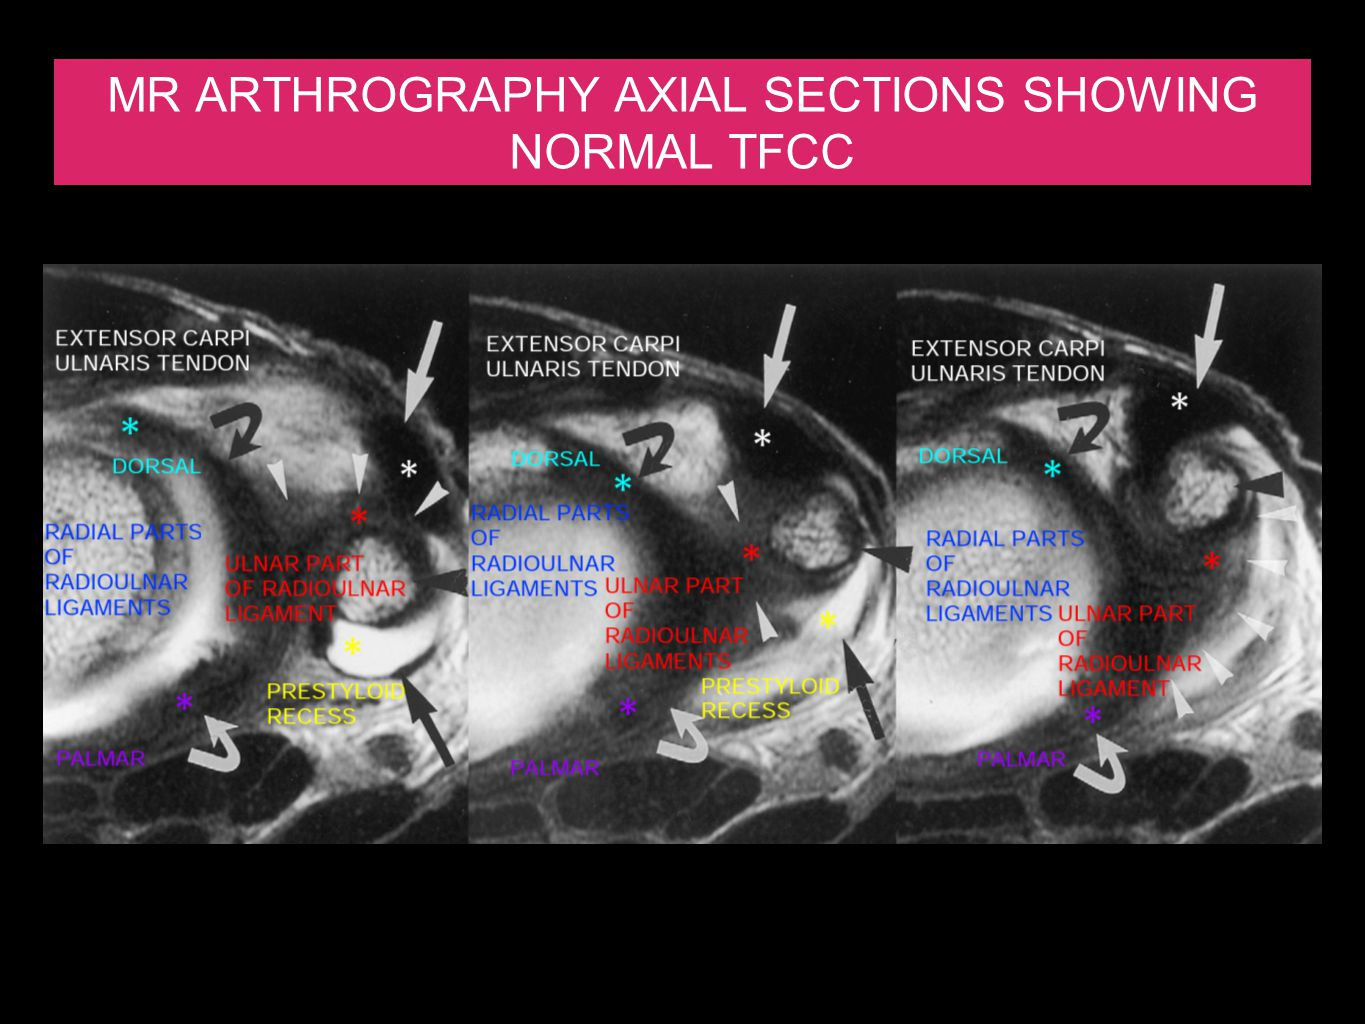 MR ARTHROGRAPHY AXIAL SECTIONS SHOWING